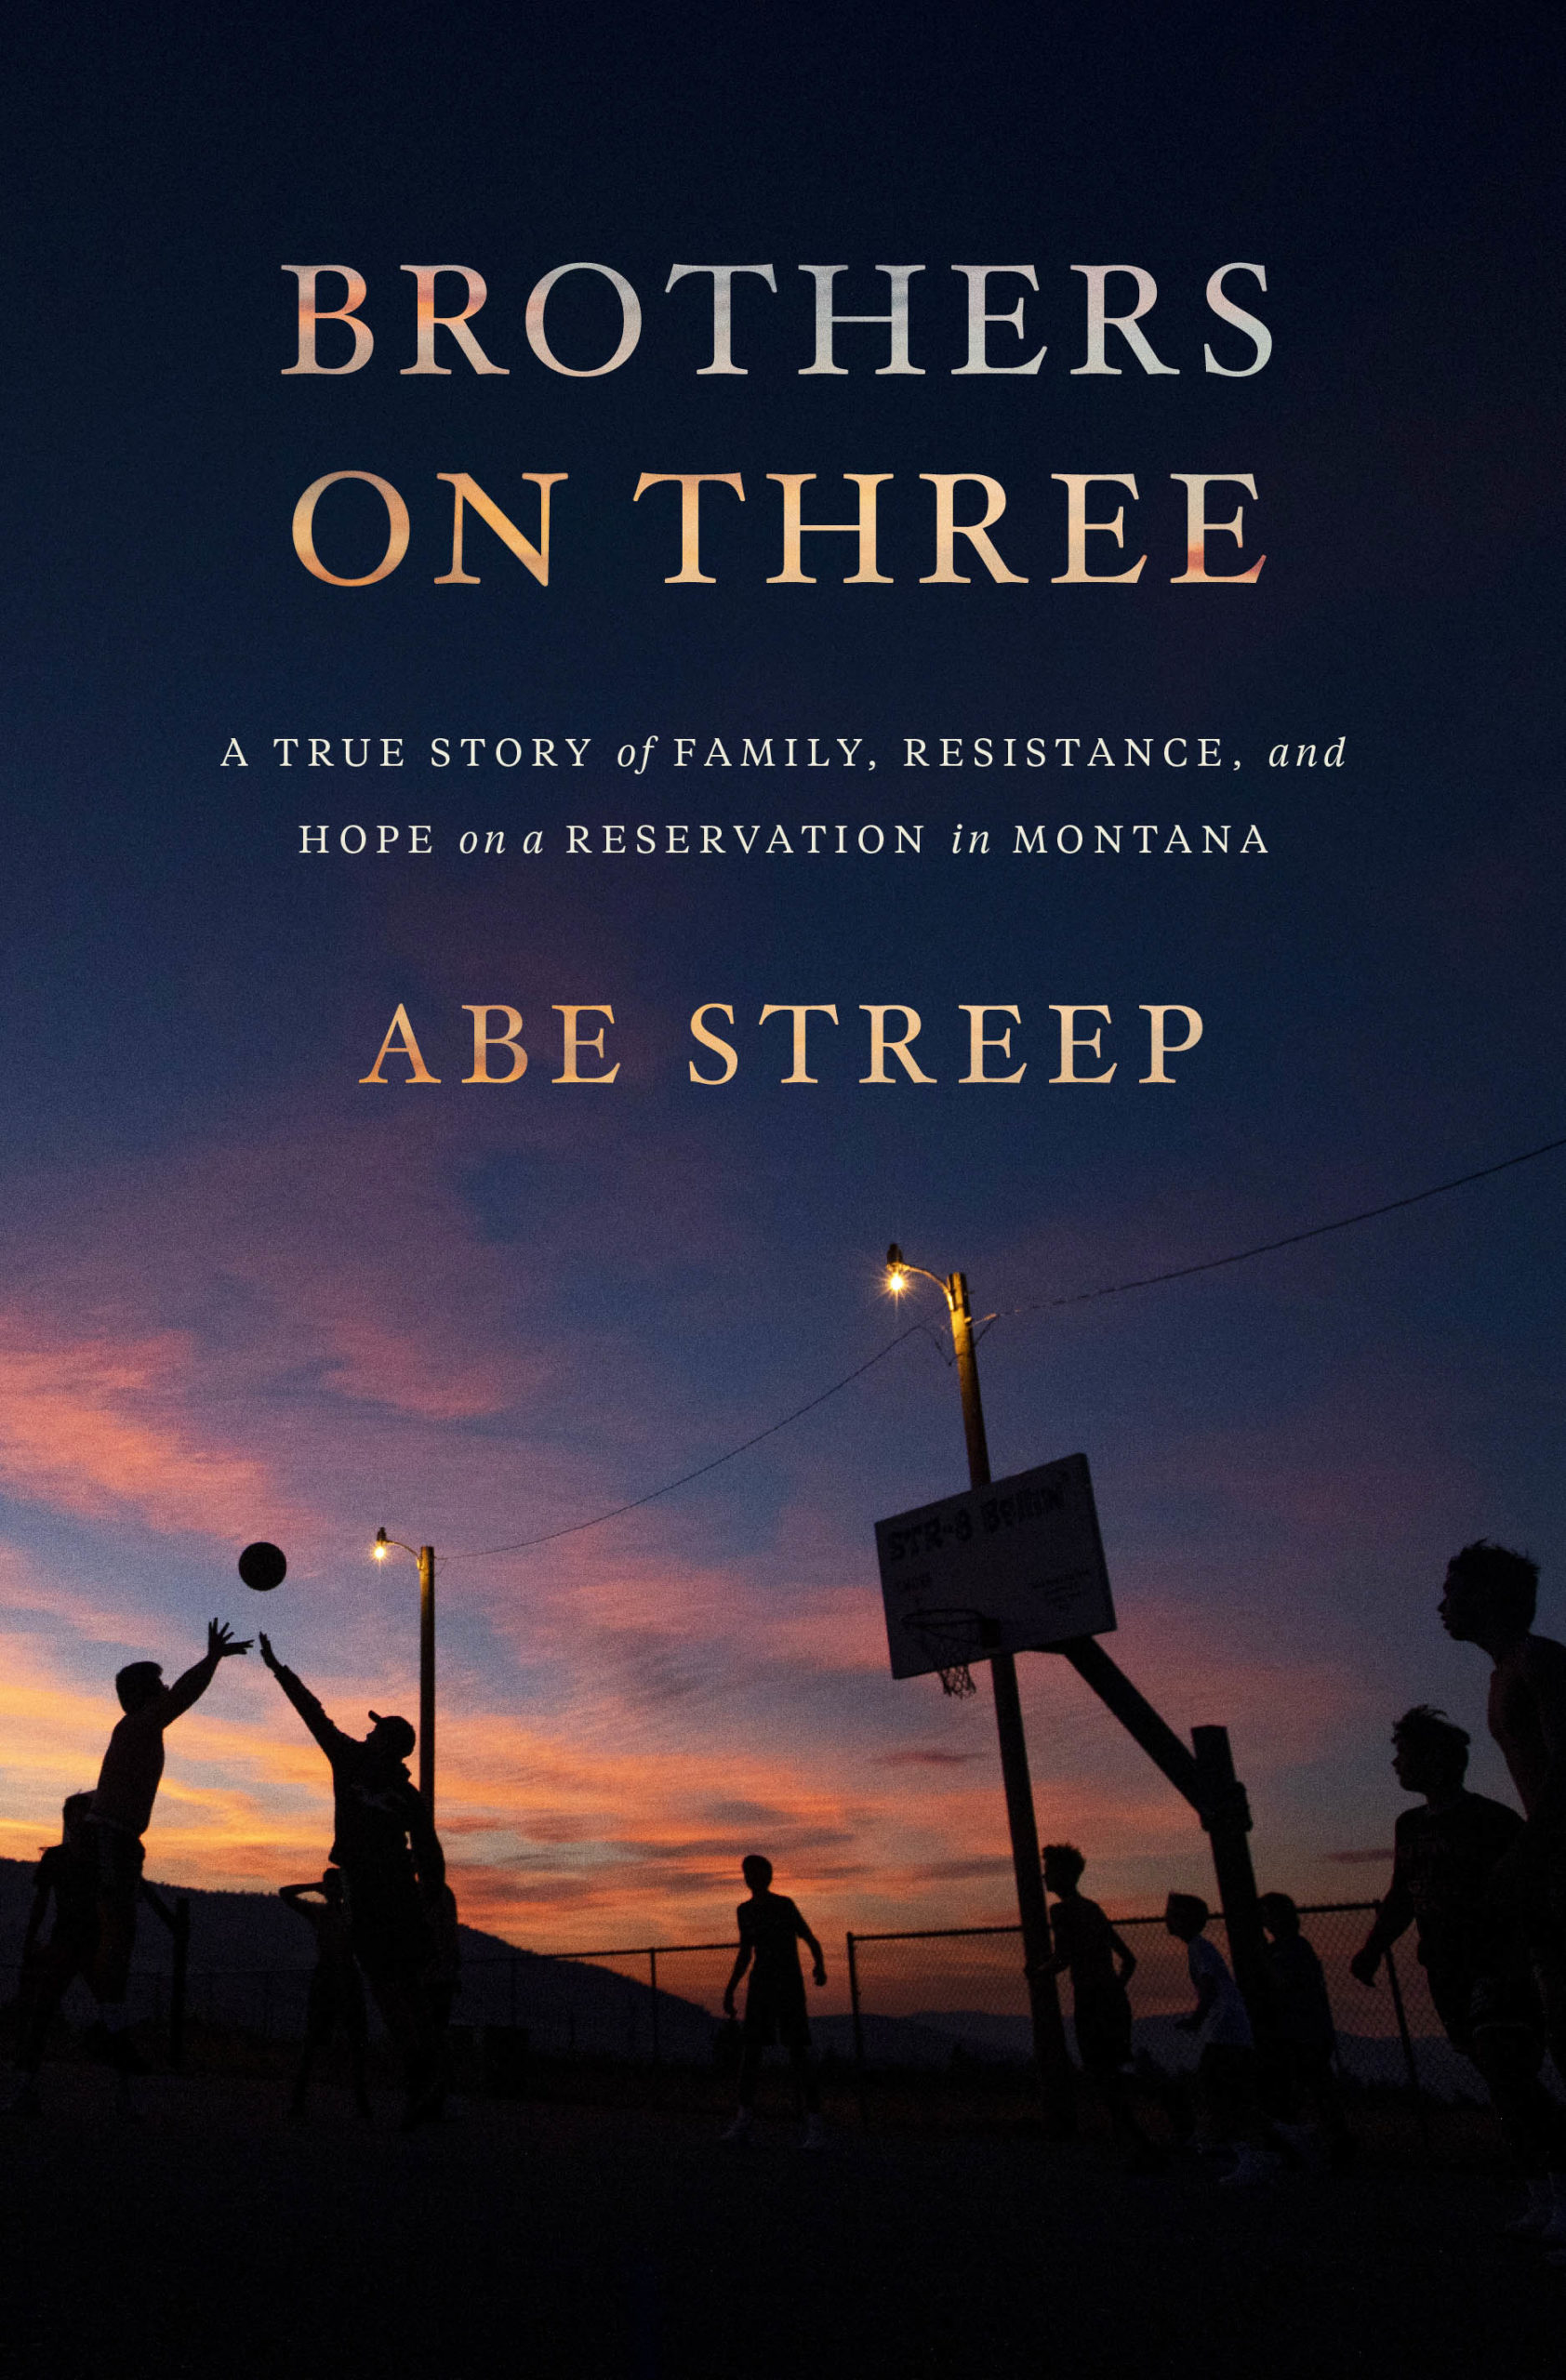 Brothers on Three by Abe Streep